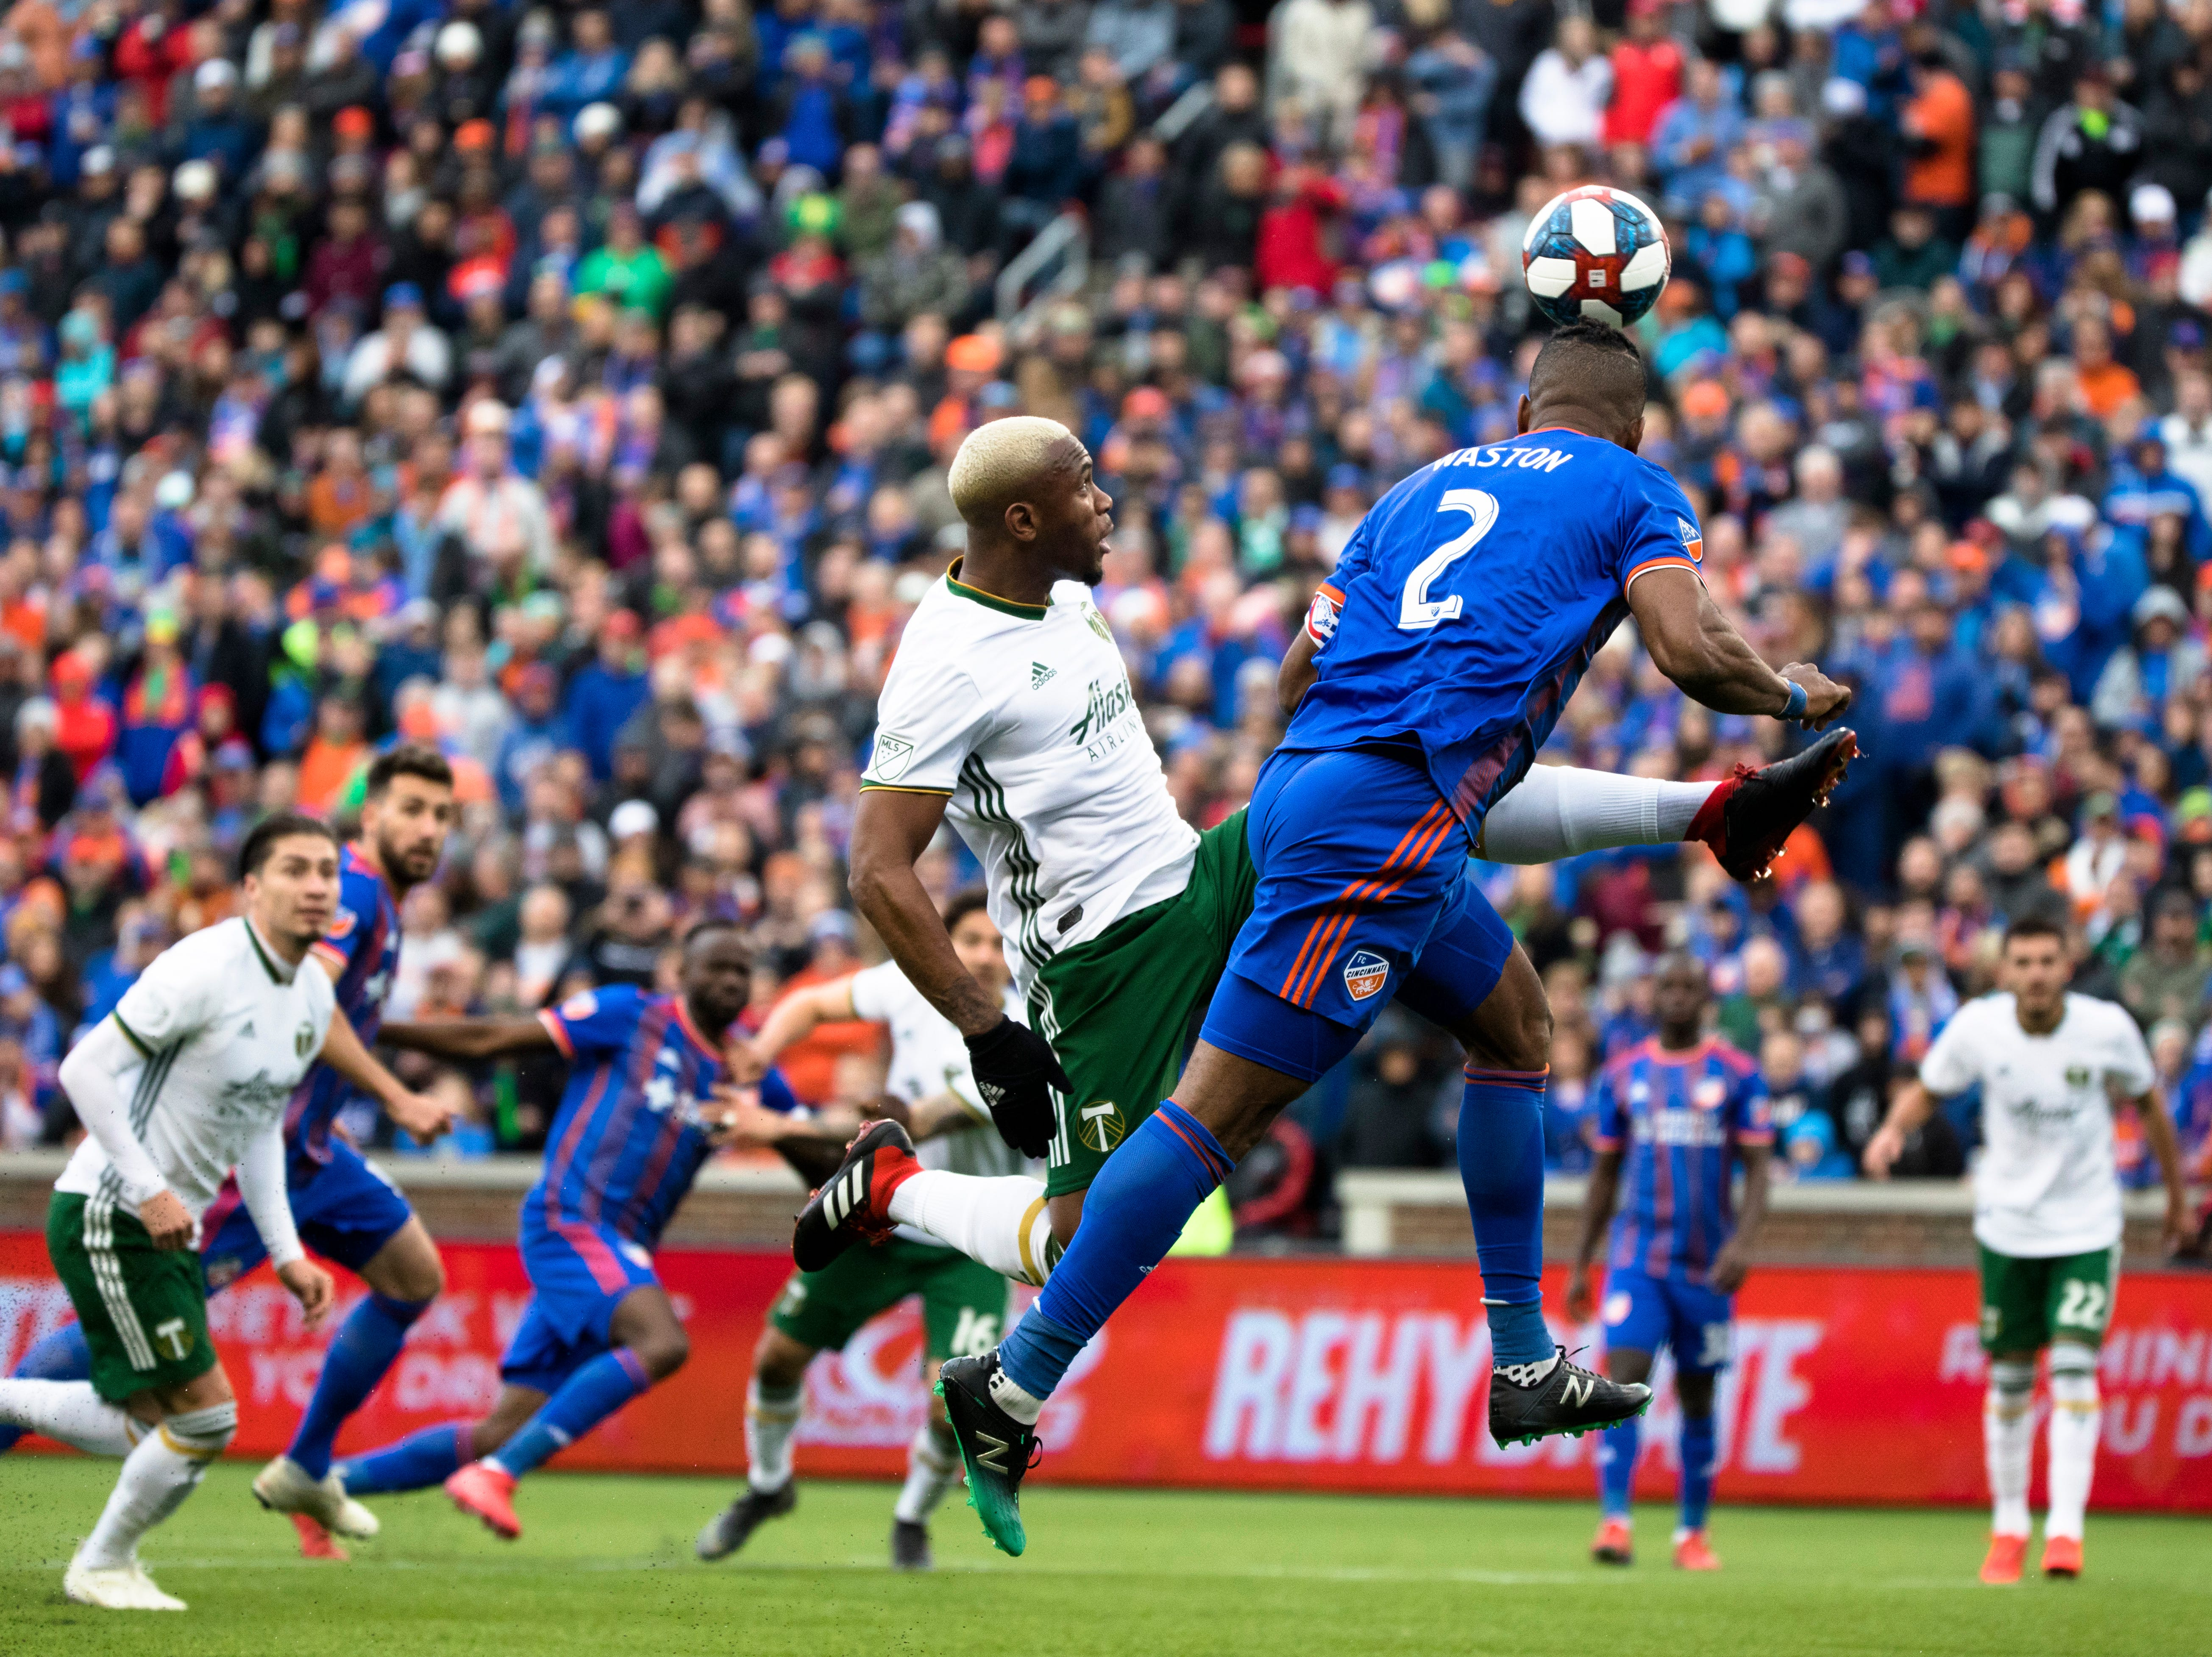 FC Cincinnati defender Kendall Waston (2) scores a goal as Portland Timbers defender Claude Dielna (5) attempts to stop him in the first half of the MLS match between FC Cincinnati and Portland Timbers on Sunday, March 17, 2019, at Nippert Stadium in Cincinnati.